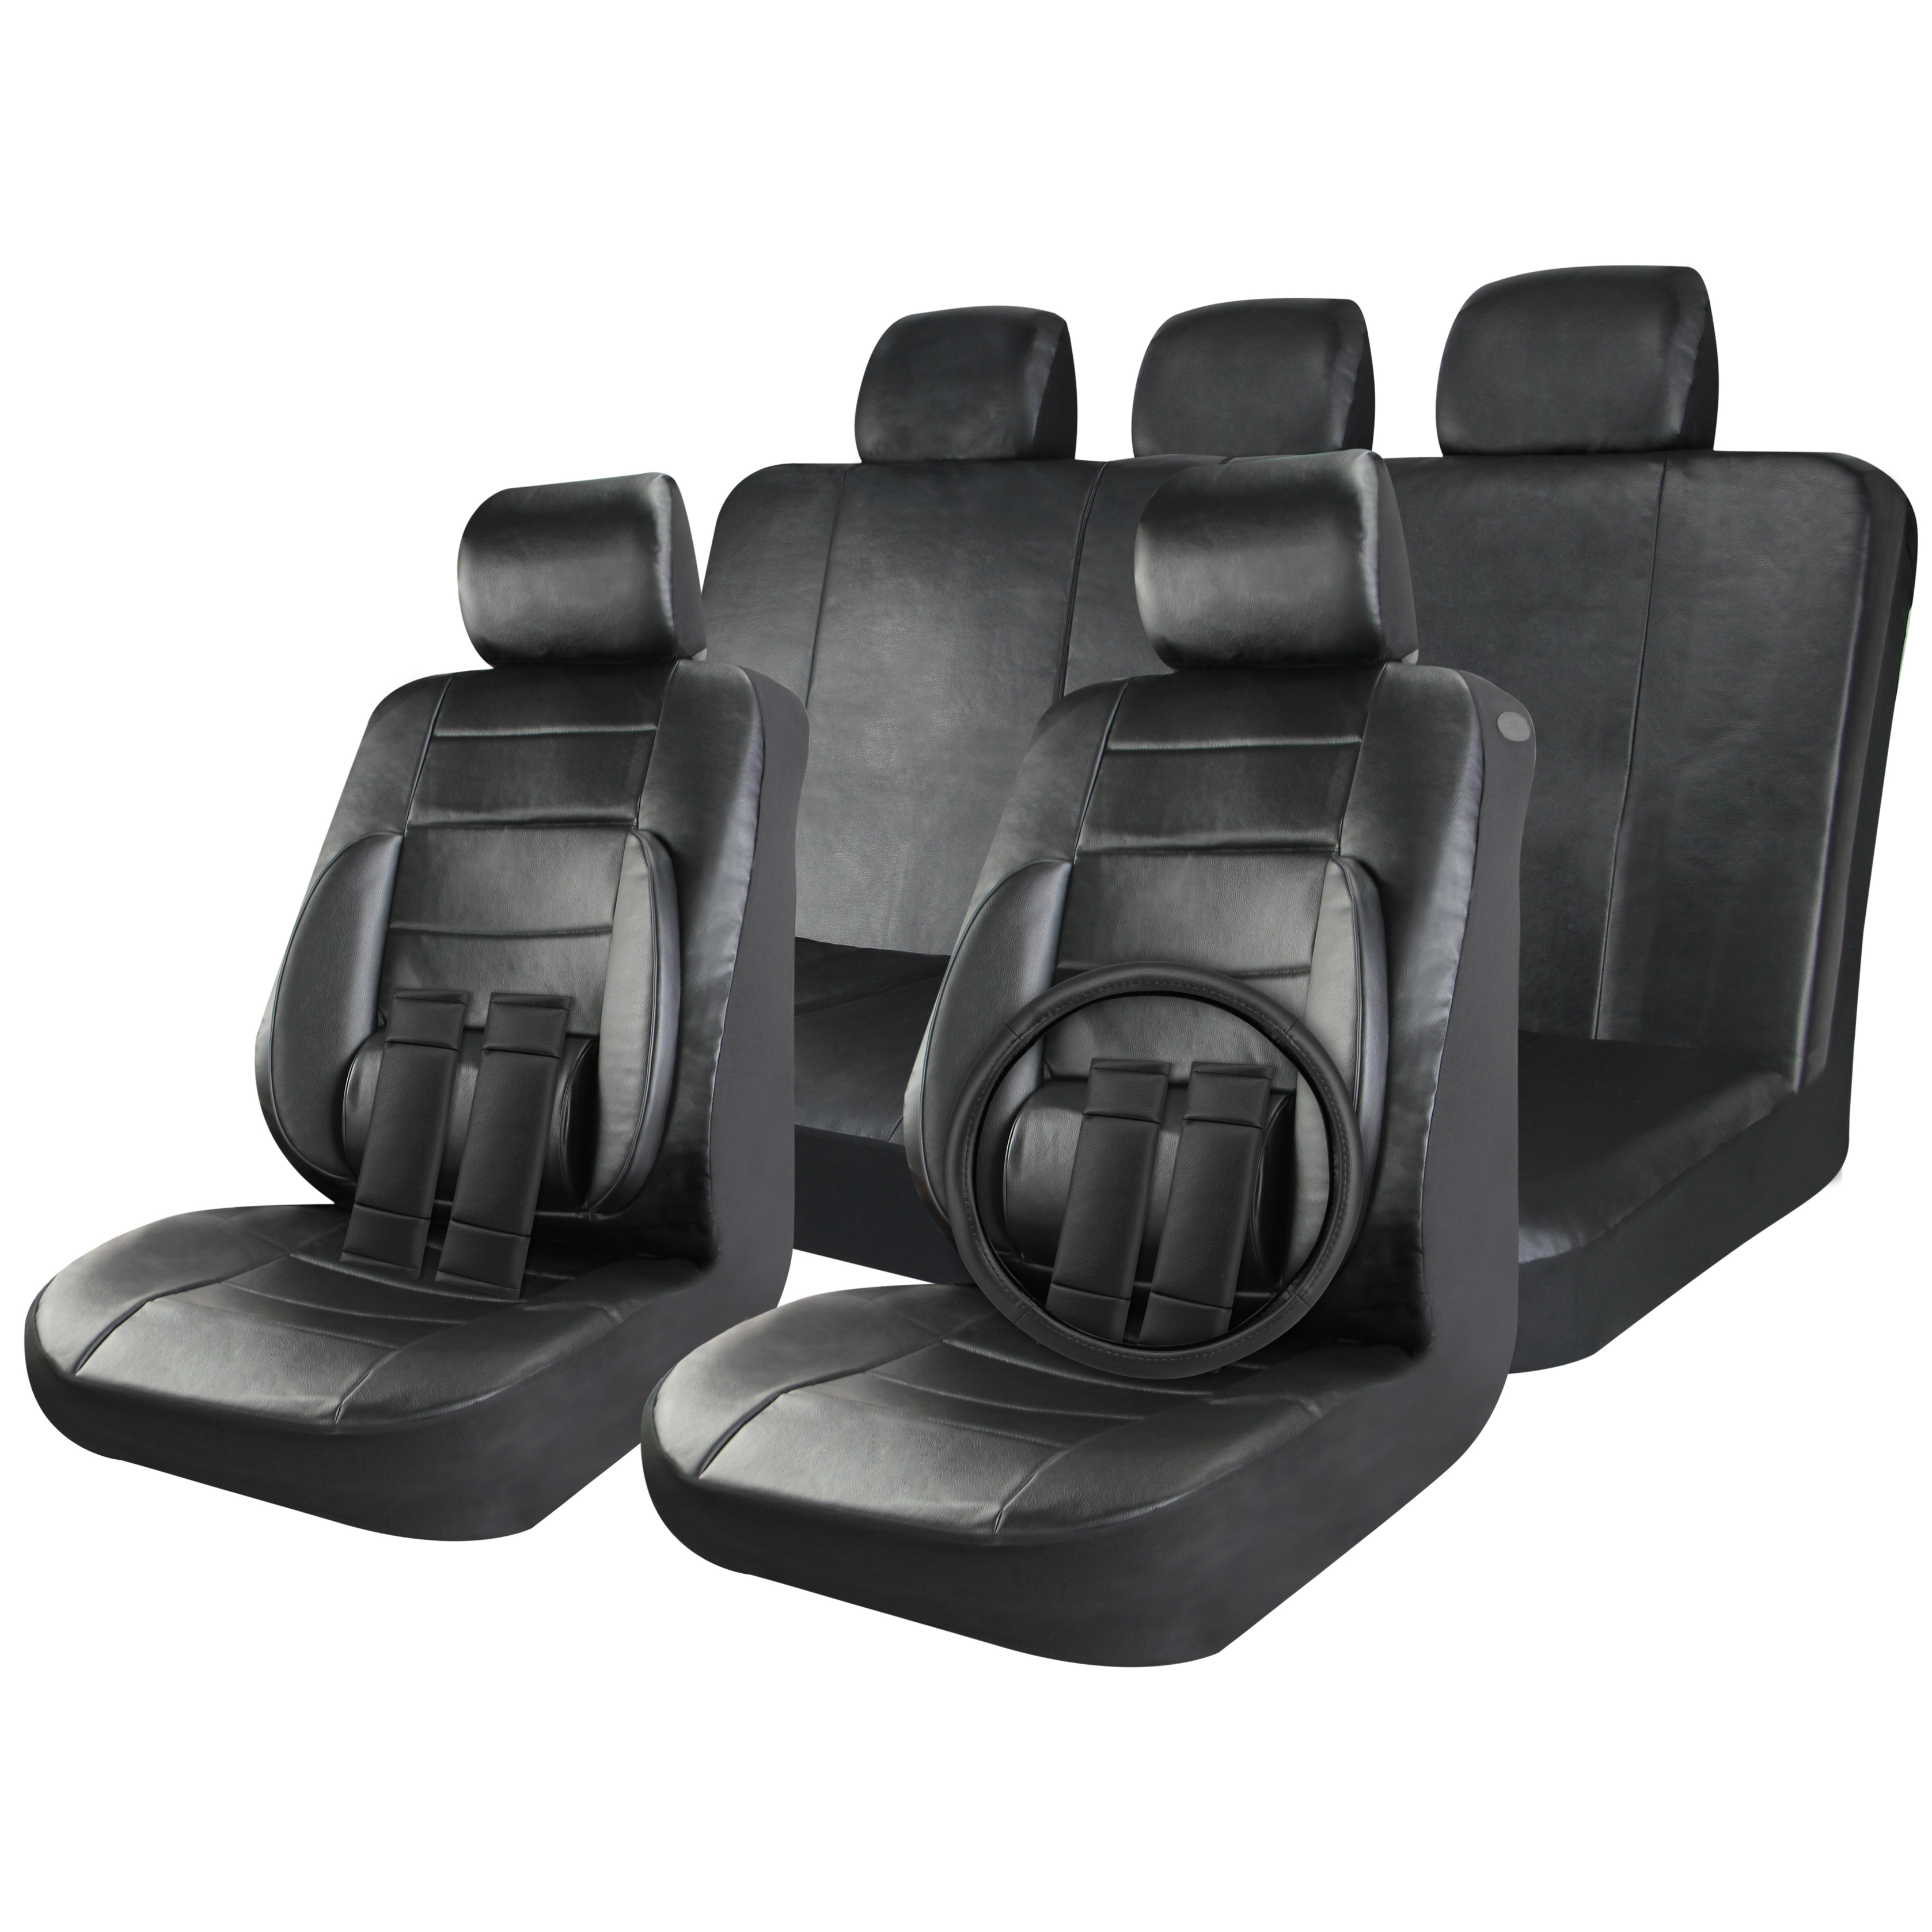 Faux Leather Car Seat Covers Solid Black 17pc Full Set